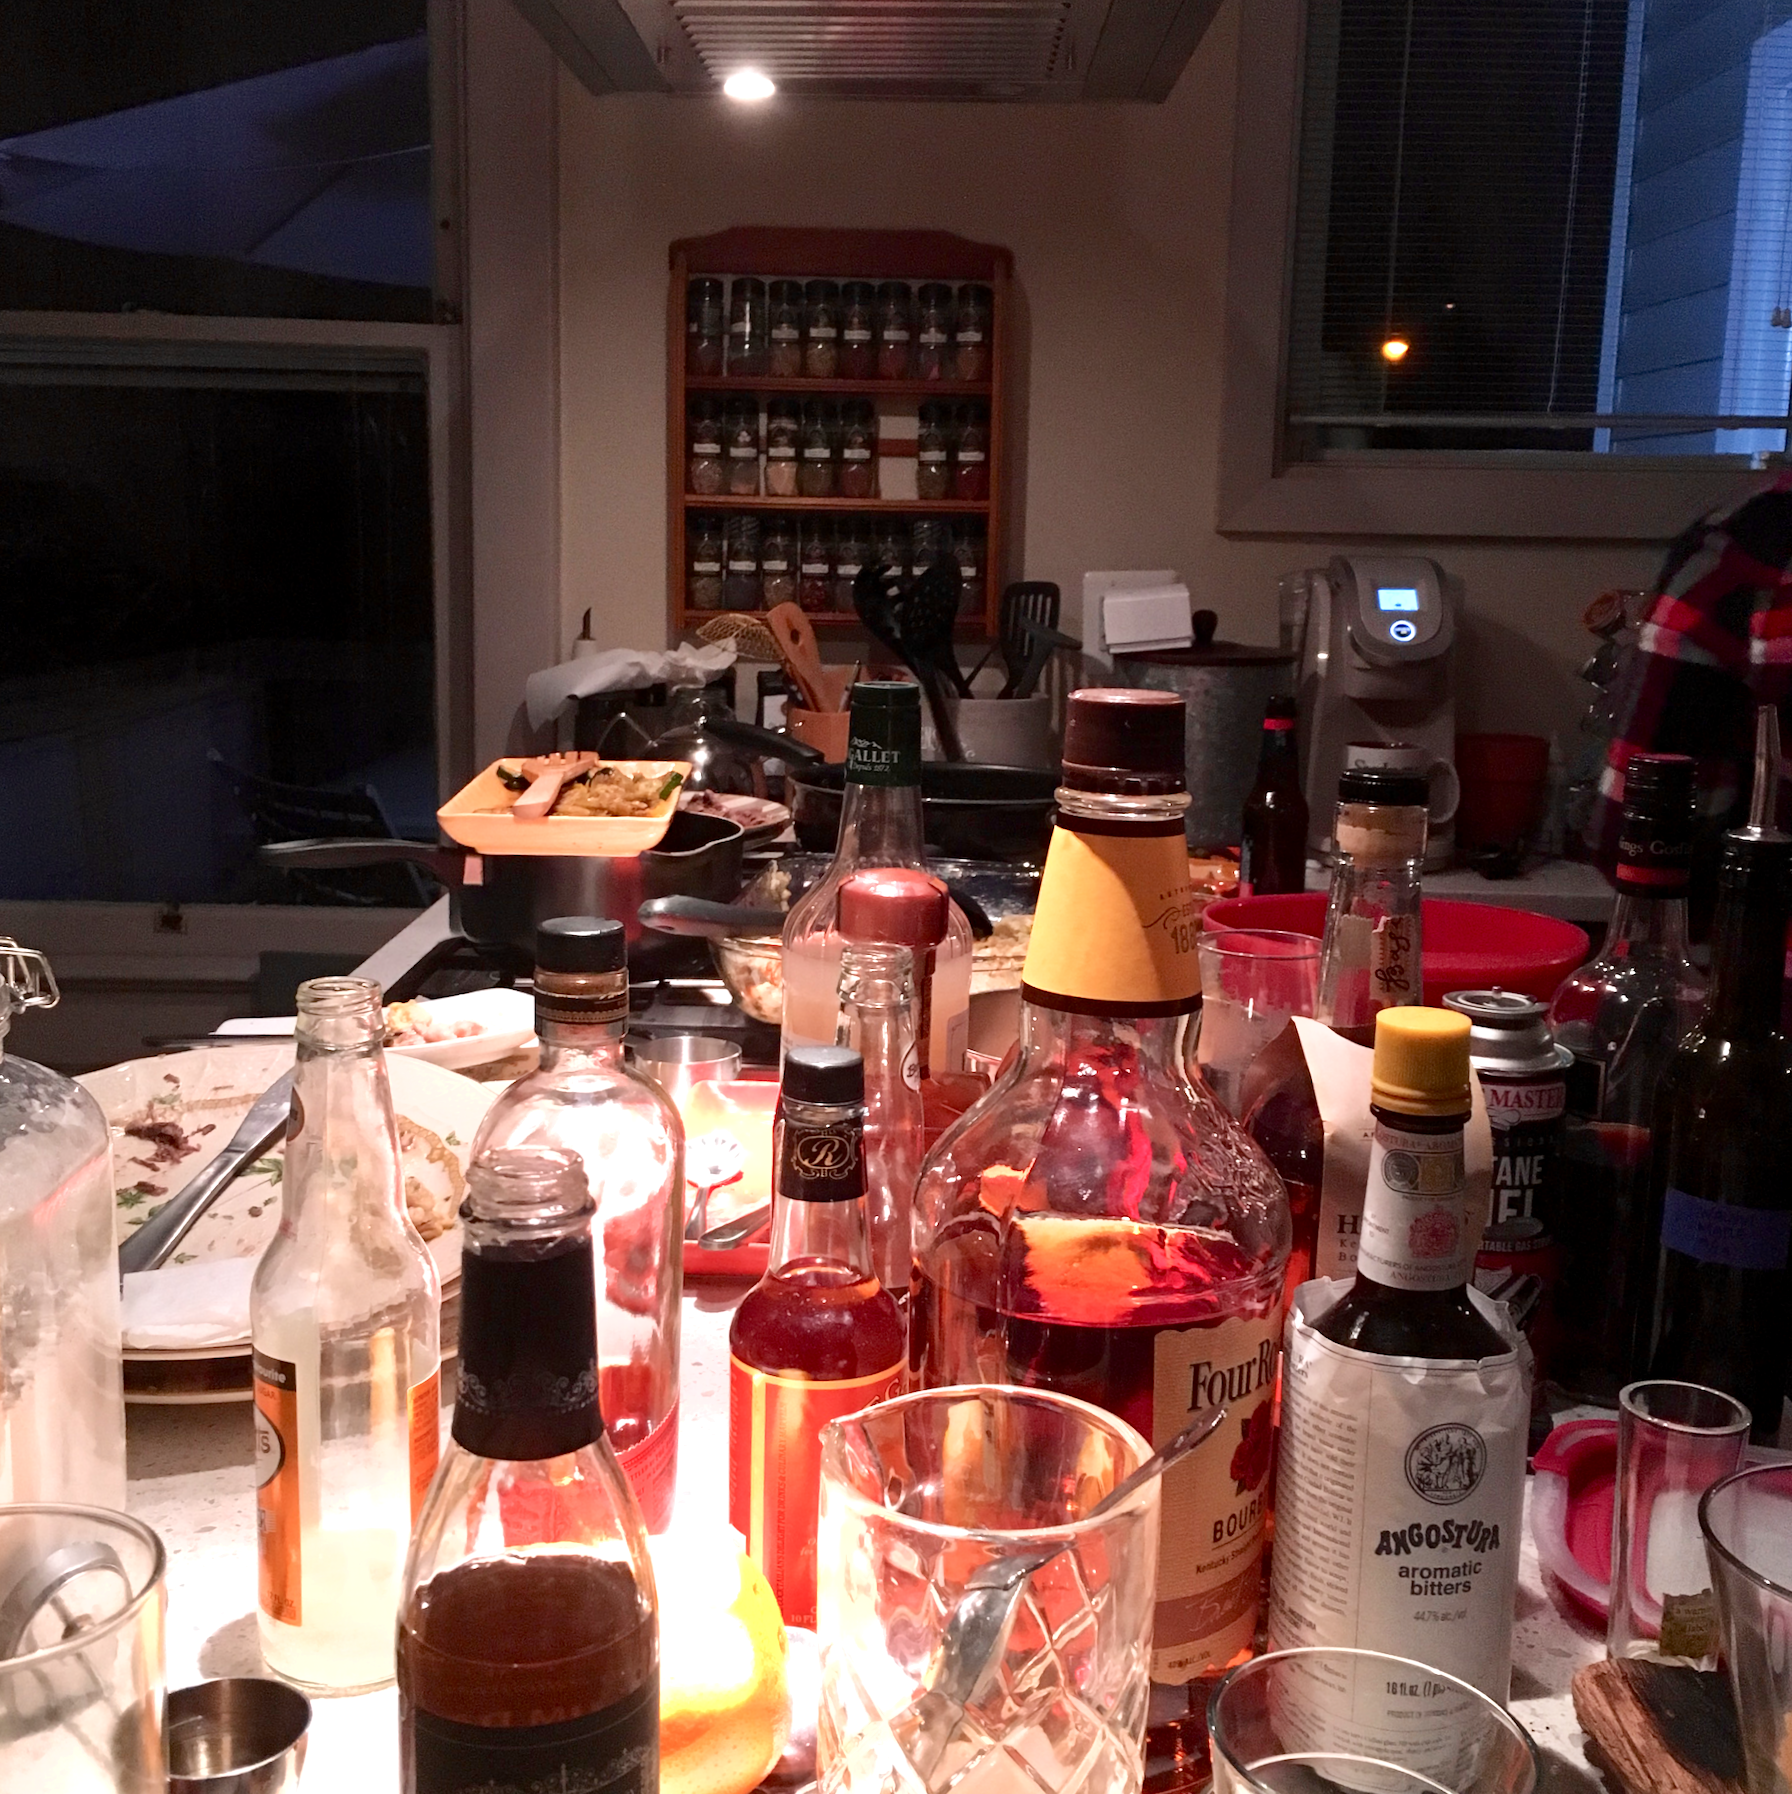 The aftermath of a 13-guest dinner party at Justin's house. The main dish was a massive prime rib.